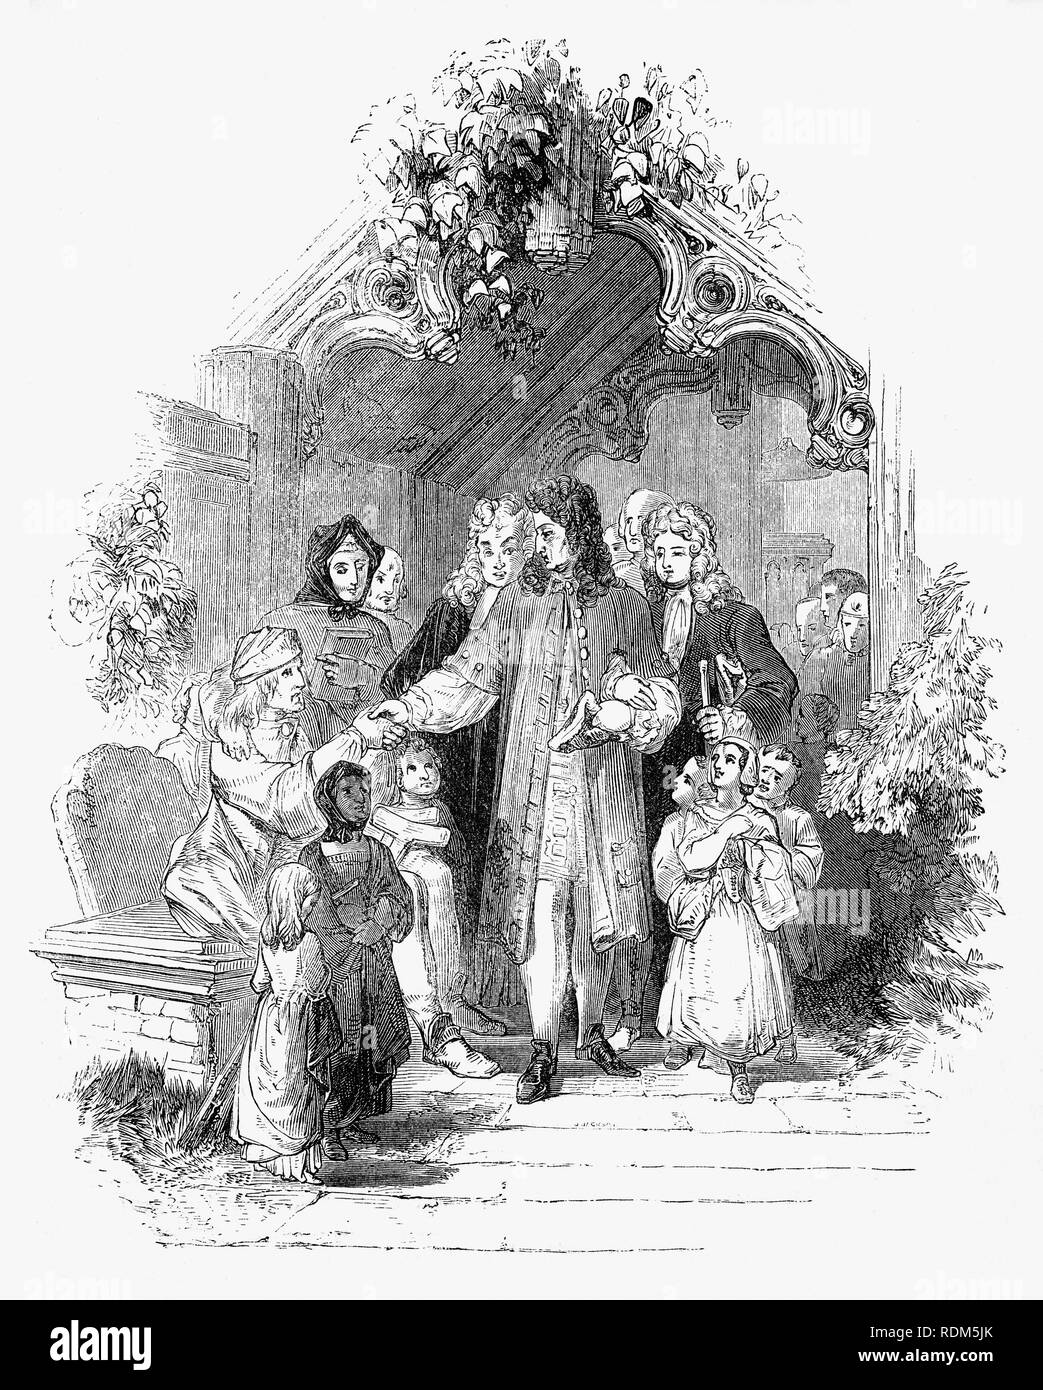 Sir Roger de Coverley, the fictional character, devised by Joseph Addison, who portrayed him as the ostensible author of papers and letters that were published in Addison and Richard Steele's influential periodical The Spectator. Seen here leaving his local church, Sir Roger, a baronet of Worcestershire and  typical landed country gentleman enquires after the welfare of his tenants. He was also a member of the fictitious Spectator Club, and the de Coverley writings included entertaining vignettes of early 18th-century English life that were often considered The Spectator's best feature. - Stock Image